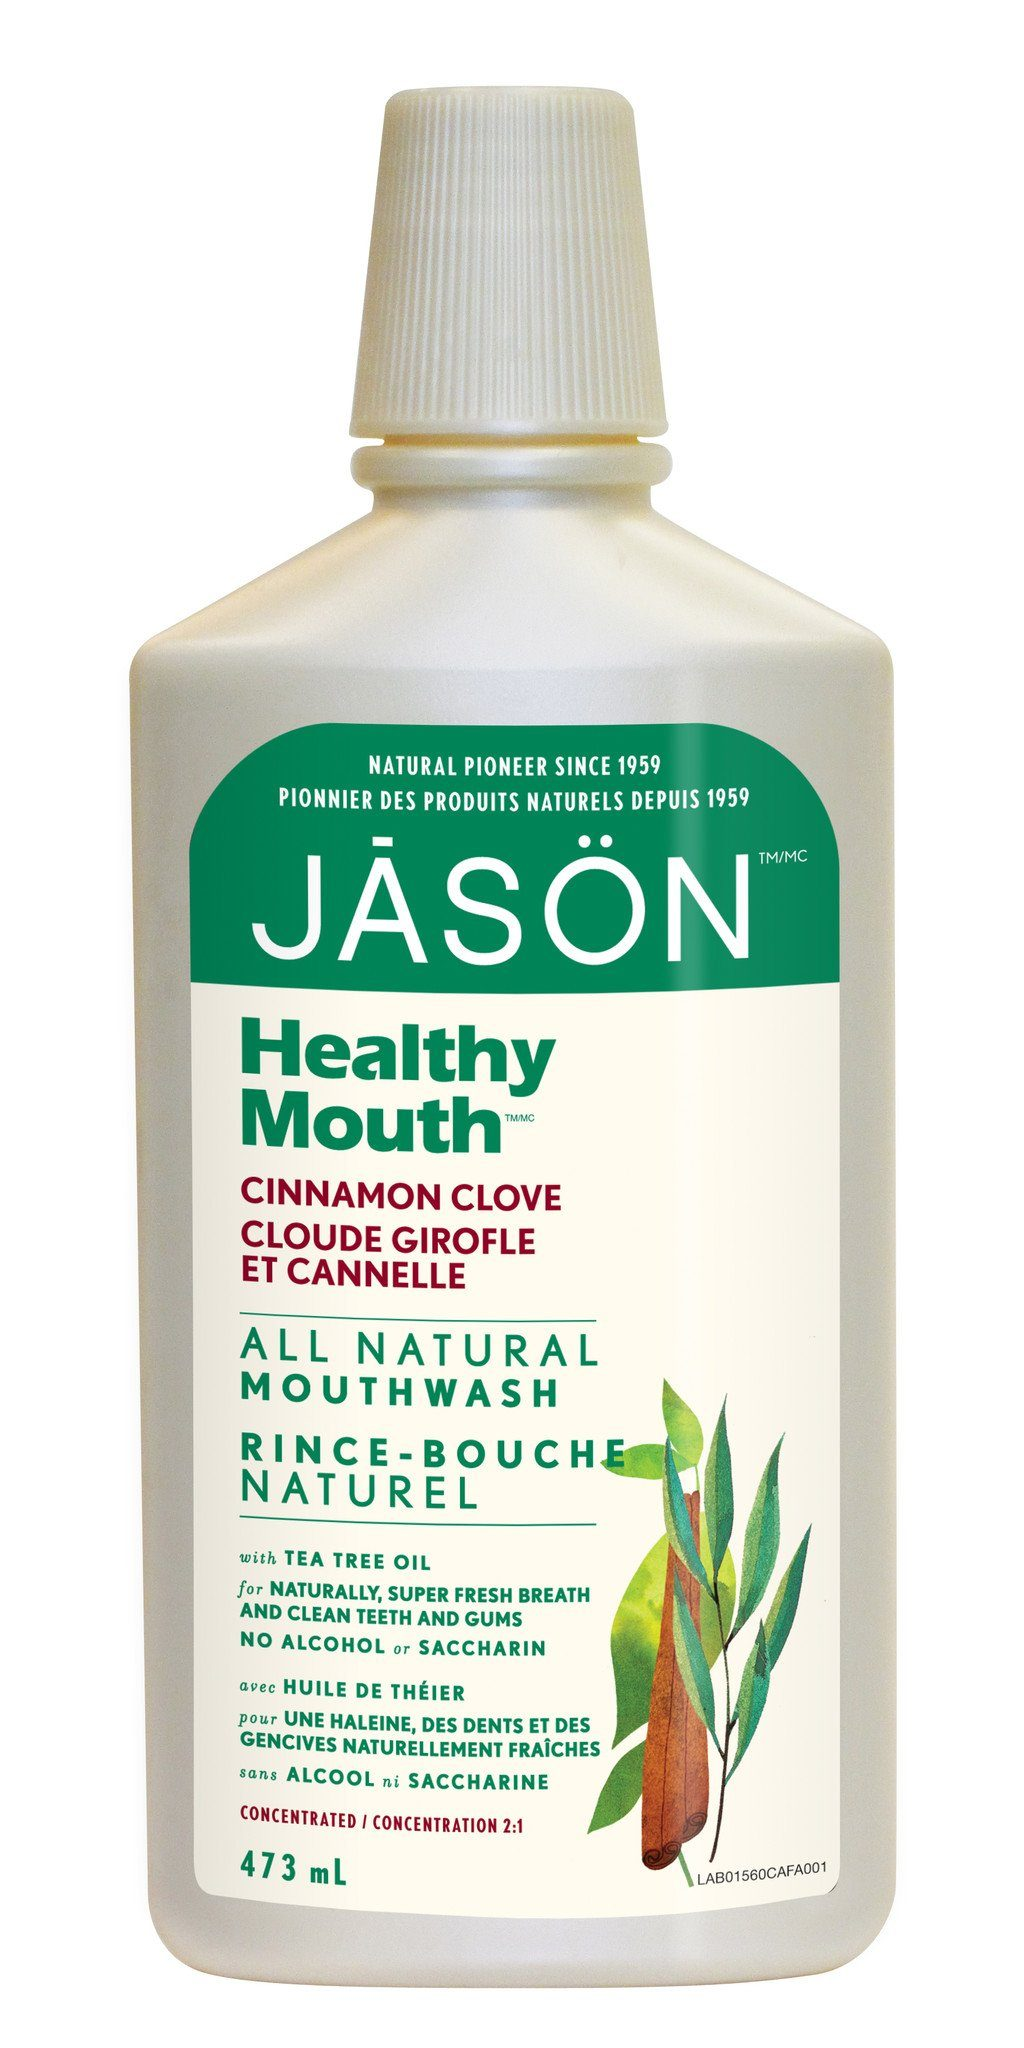 Personal Care - JASON - Healthy Mouth® Tartar Control Cinnamon Clove Mouthwash, 473ml